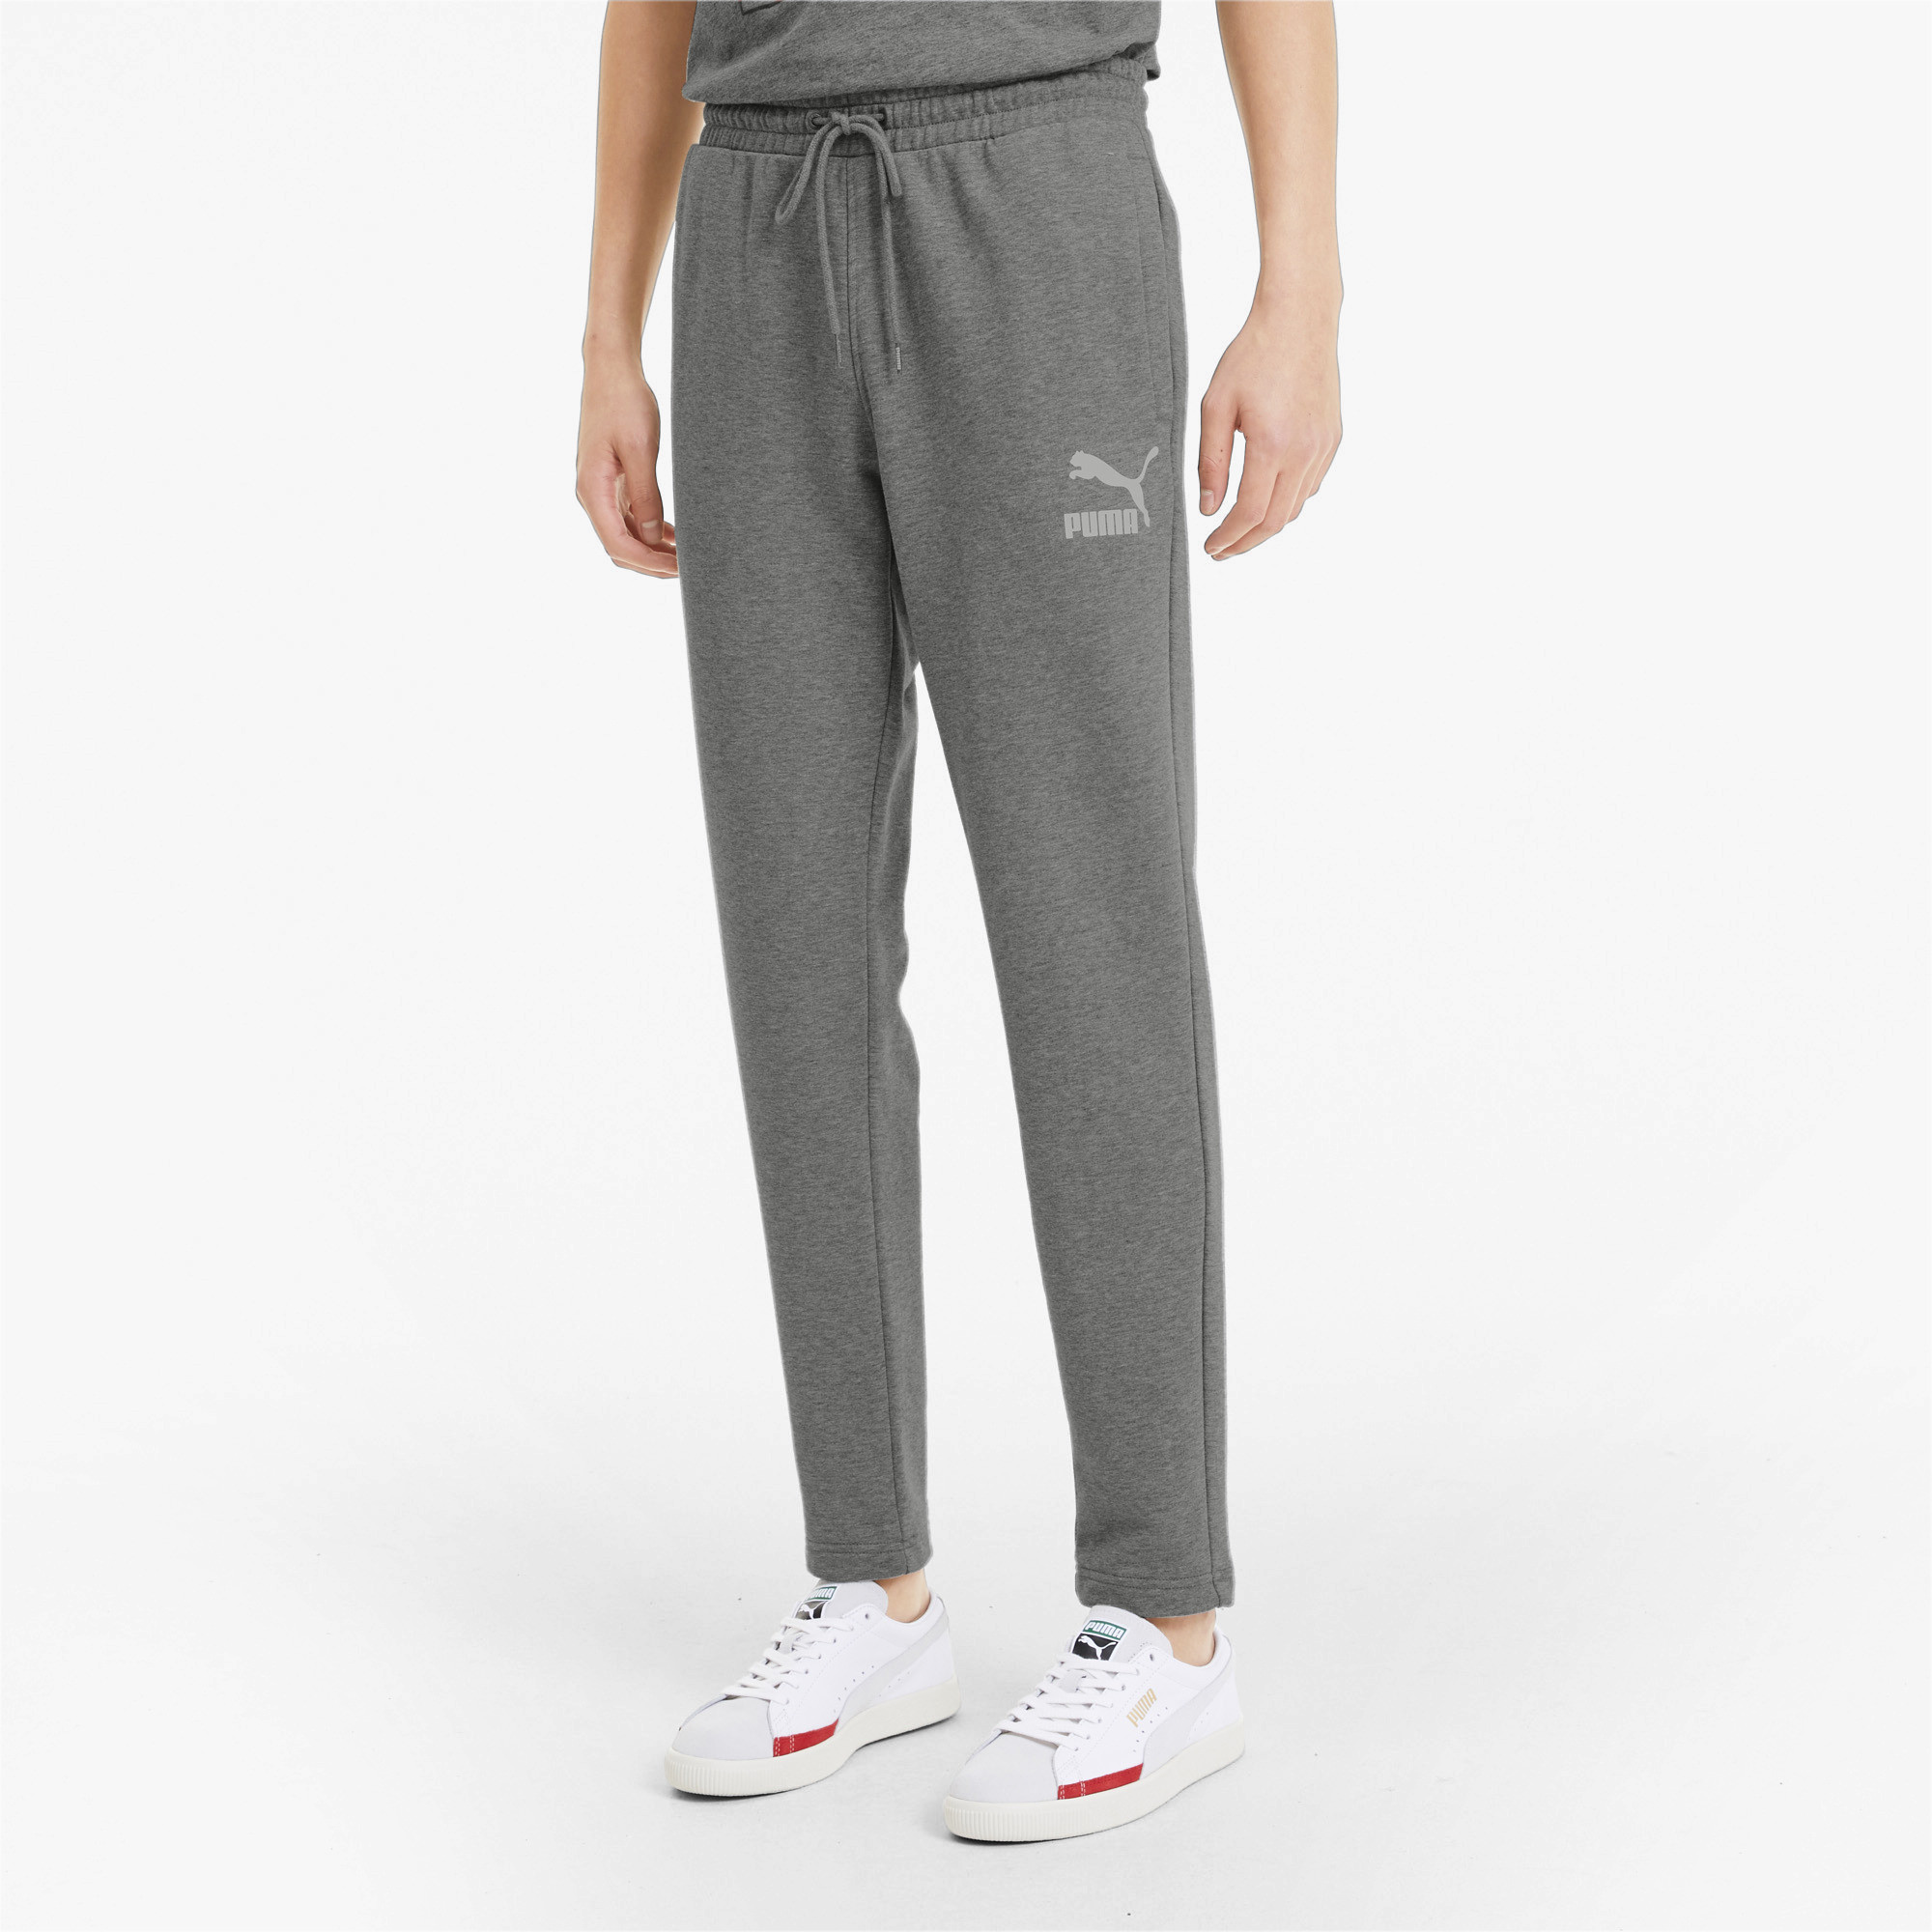 PUMA-Men-039-s-Classics-Sweatpants thumbnail 4